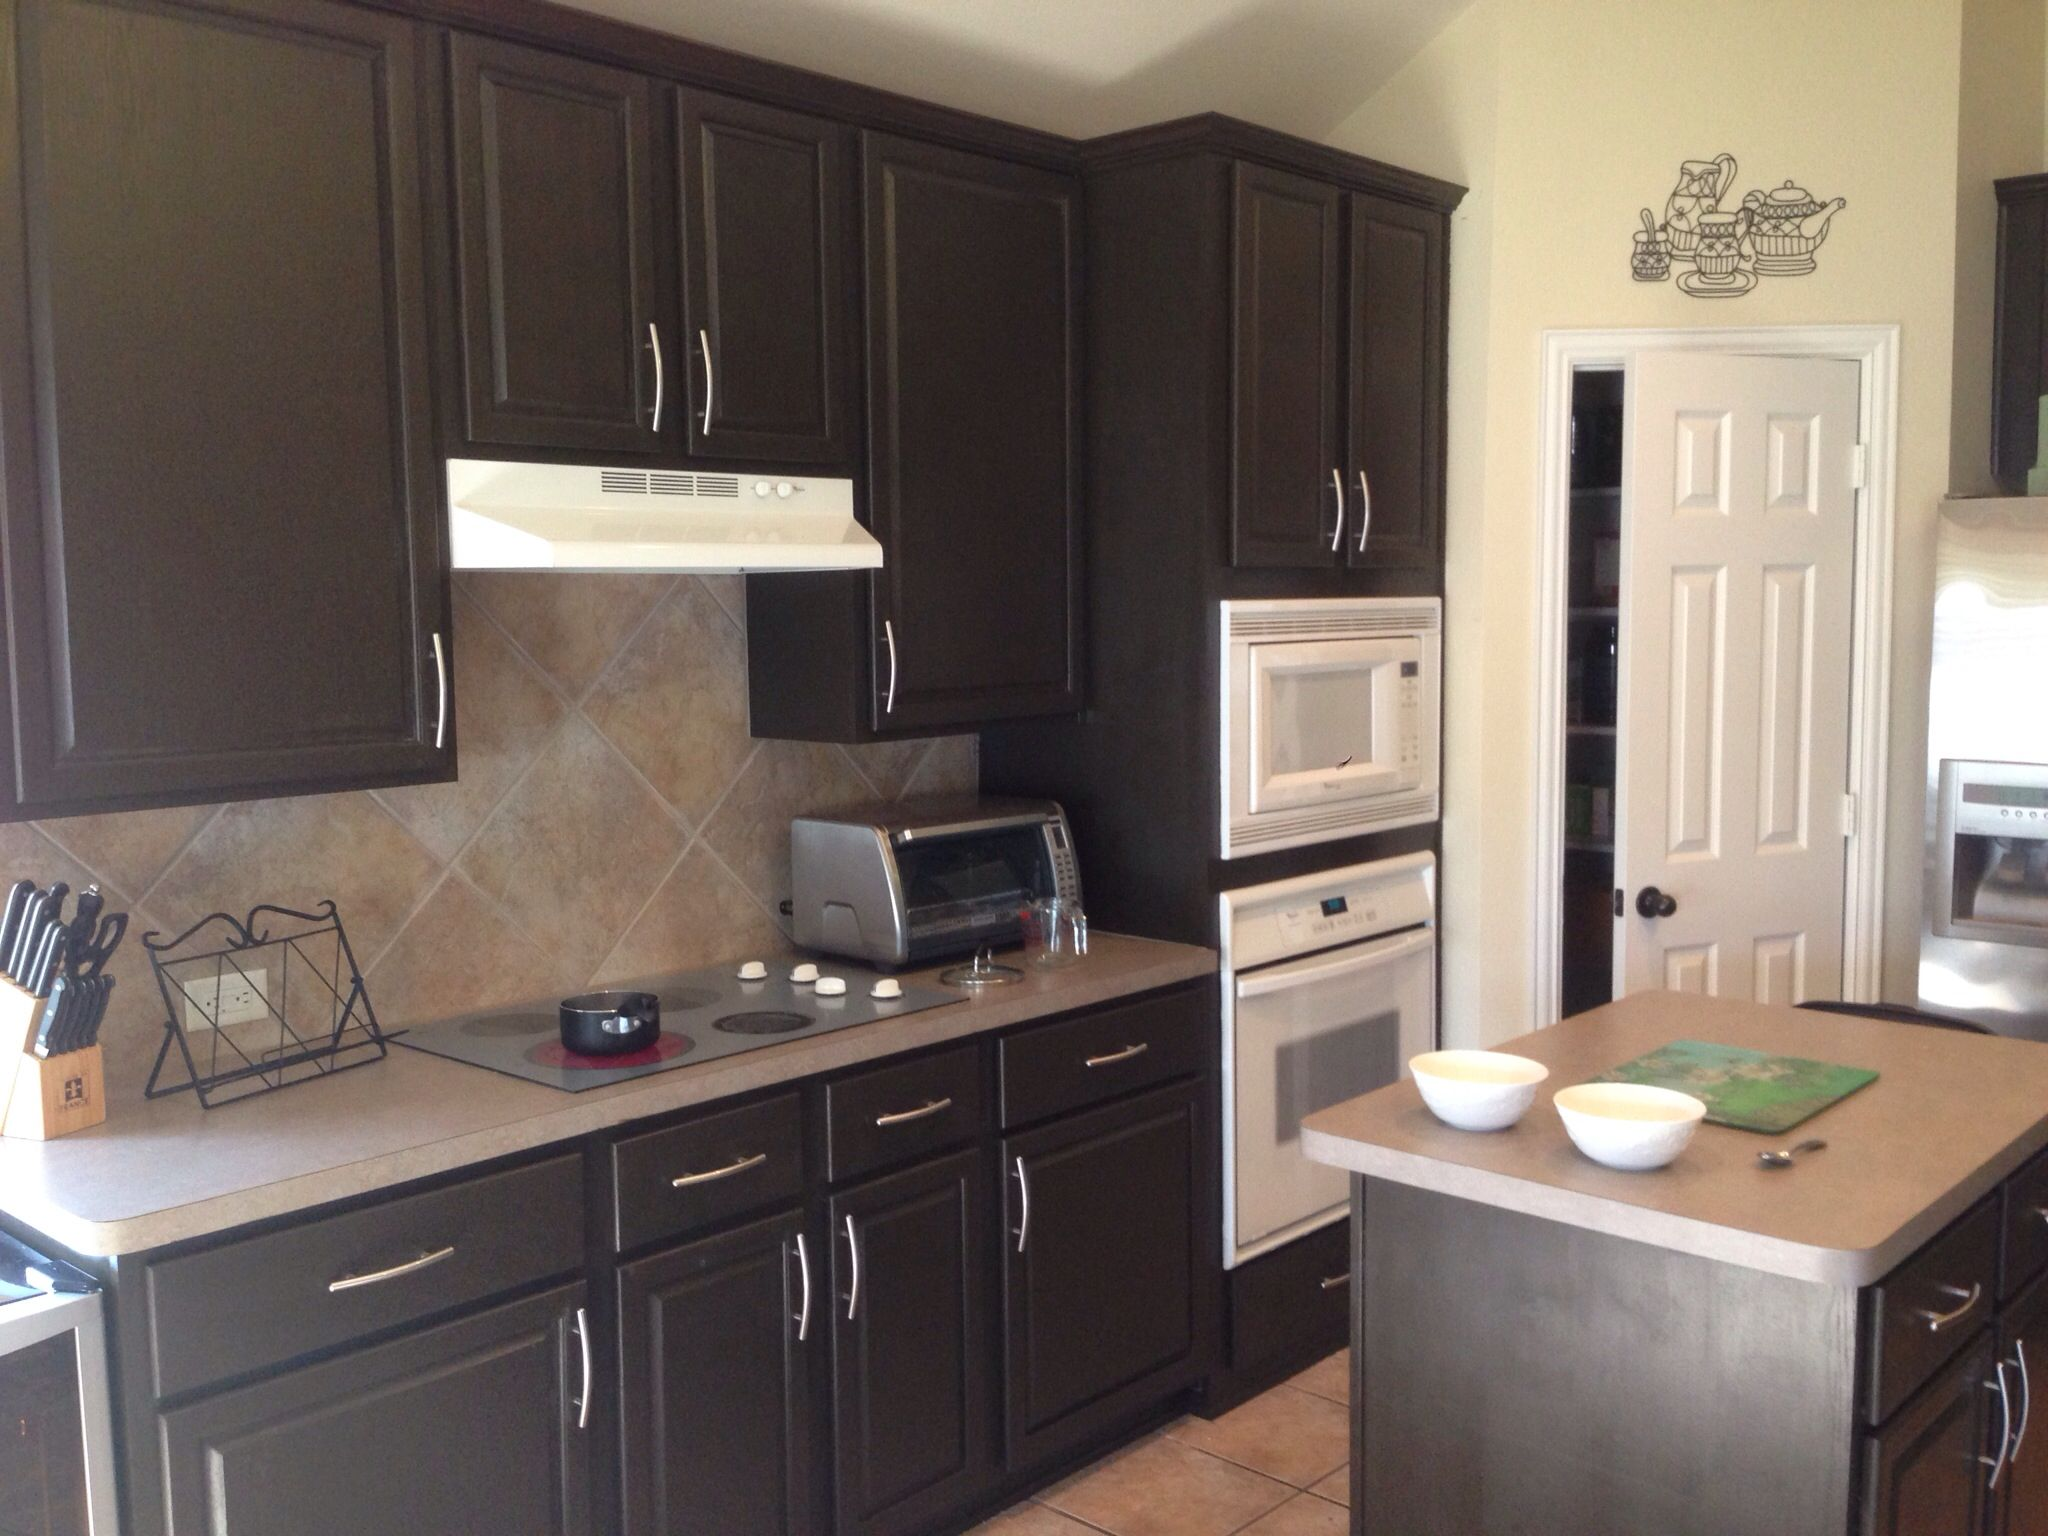 Coffee Color Kitchen Cabinets Espresso Beans By Behr We Painted Our Lightly Stained Oak